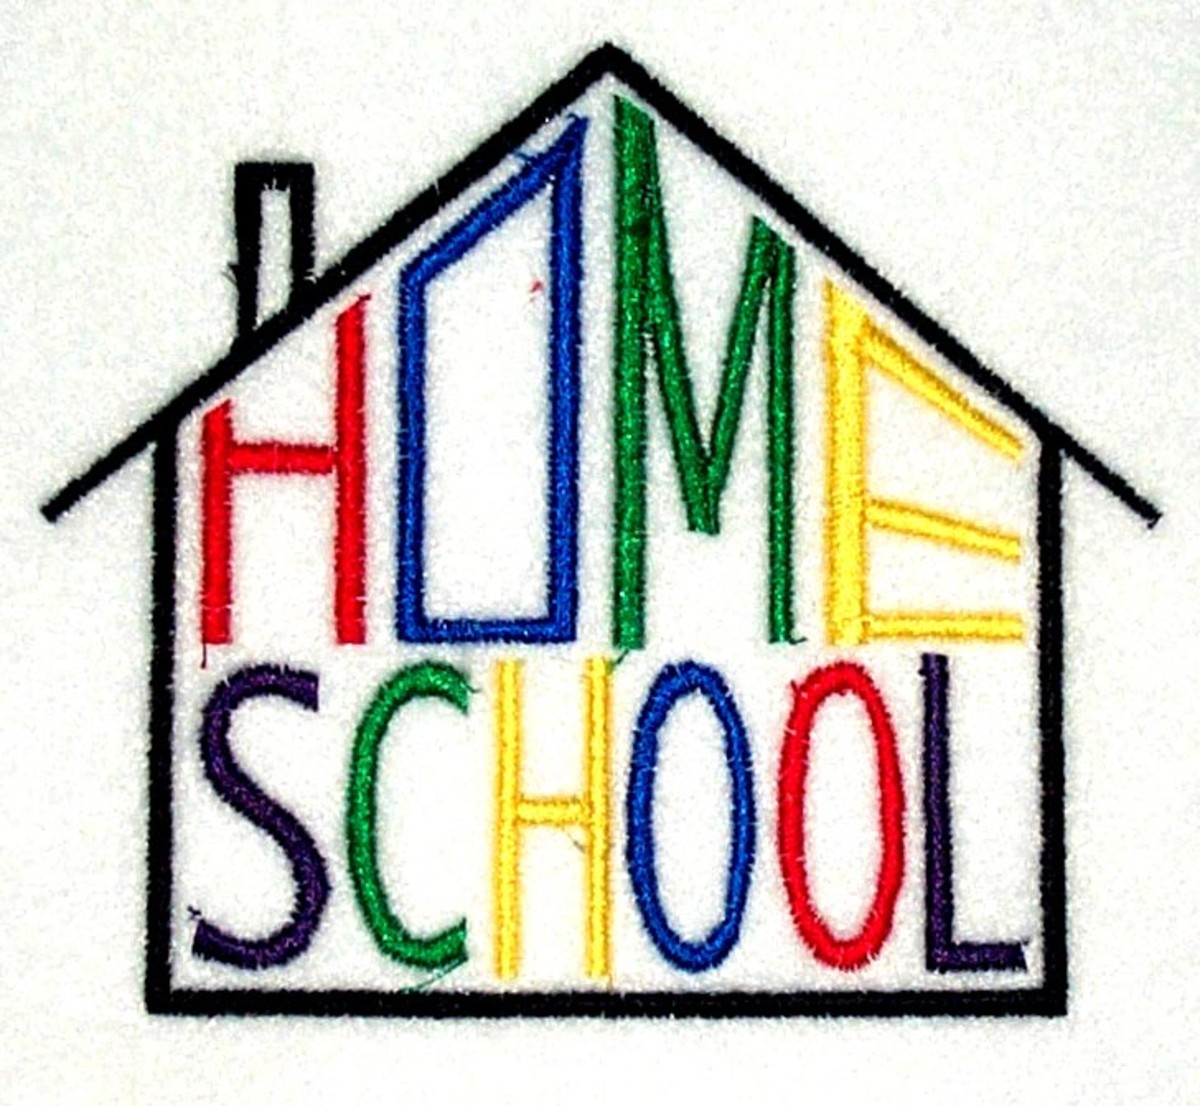 I Was Homeschooled Until Highschool - Homeschooling Pros and Cons, Benefits and Need For Socialization